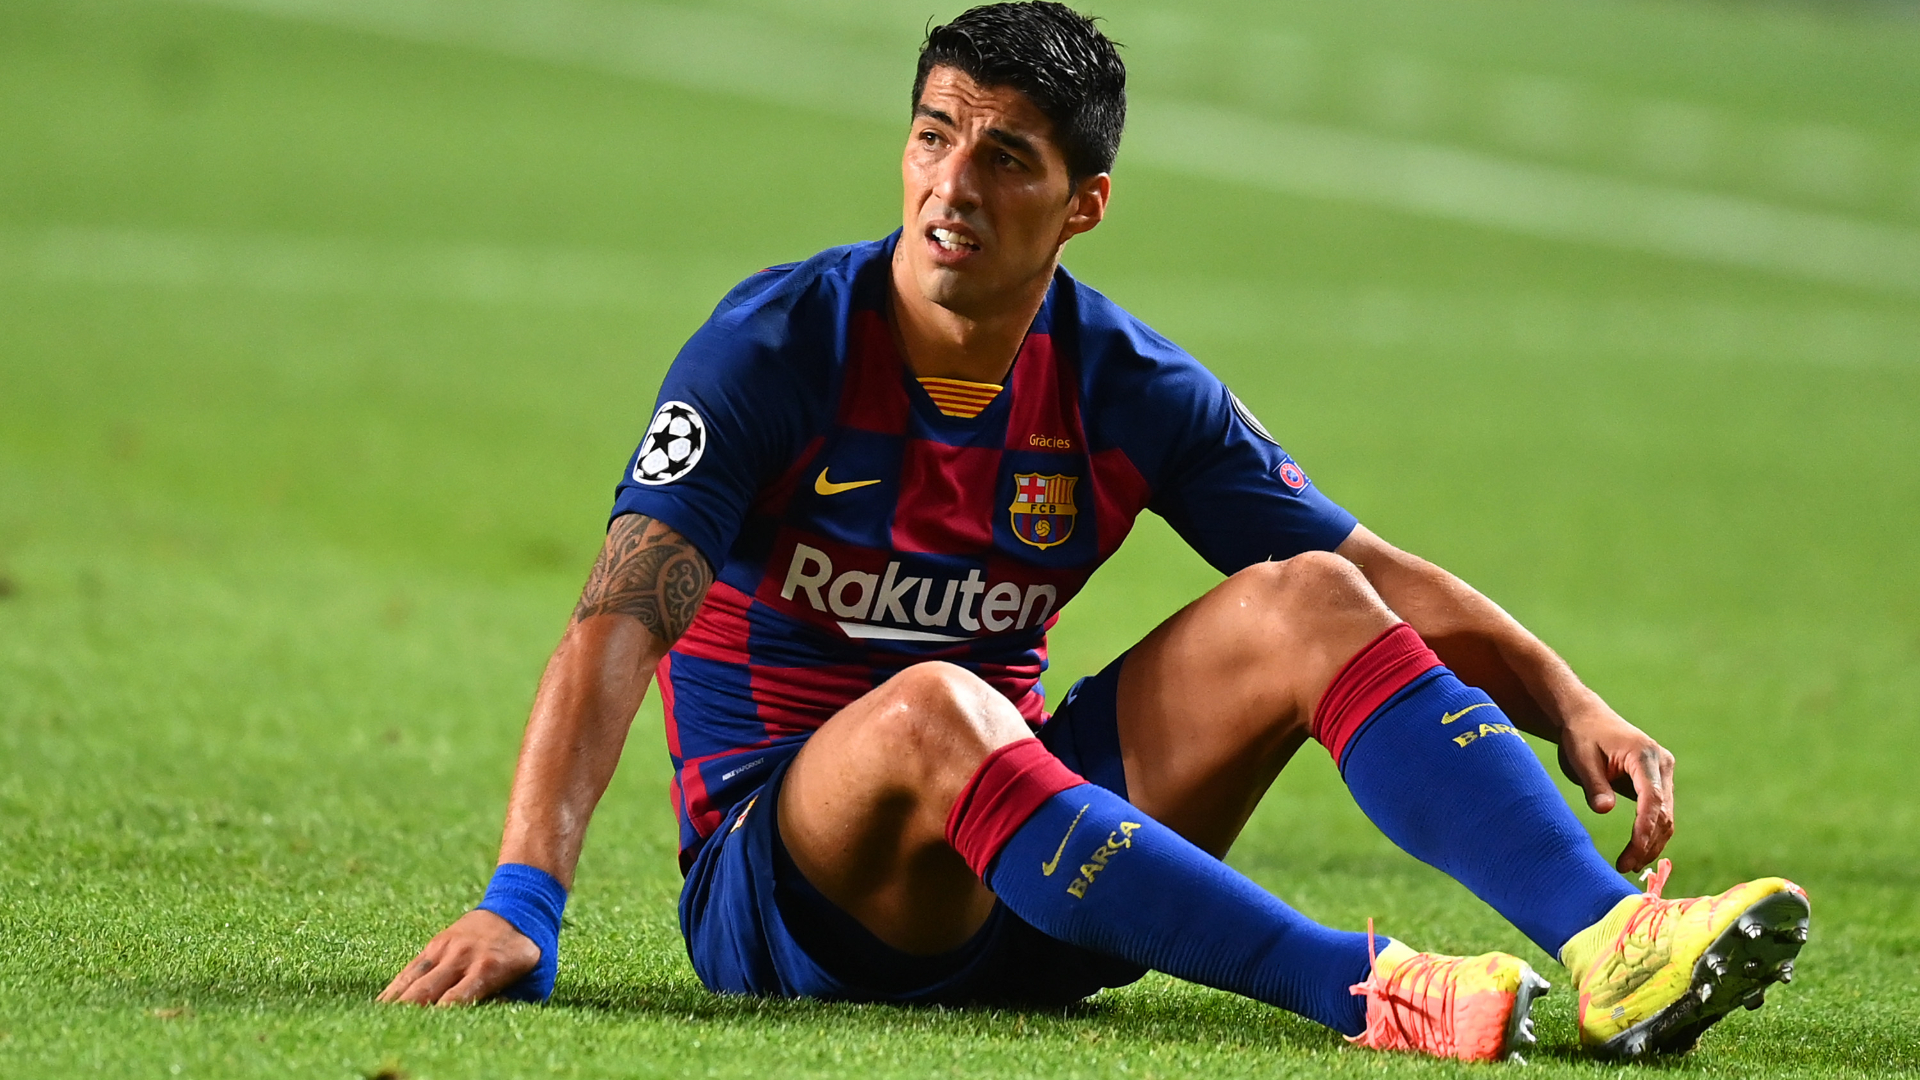 Barcelona looking to sign a striker but Suarez future unclear, says Ramon Planes